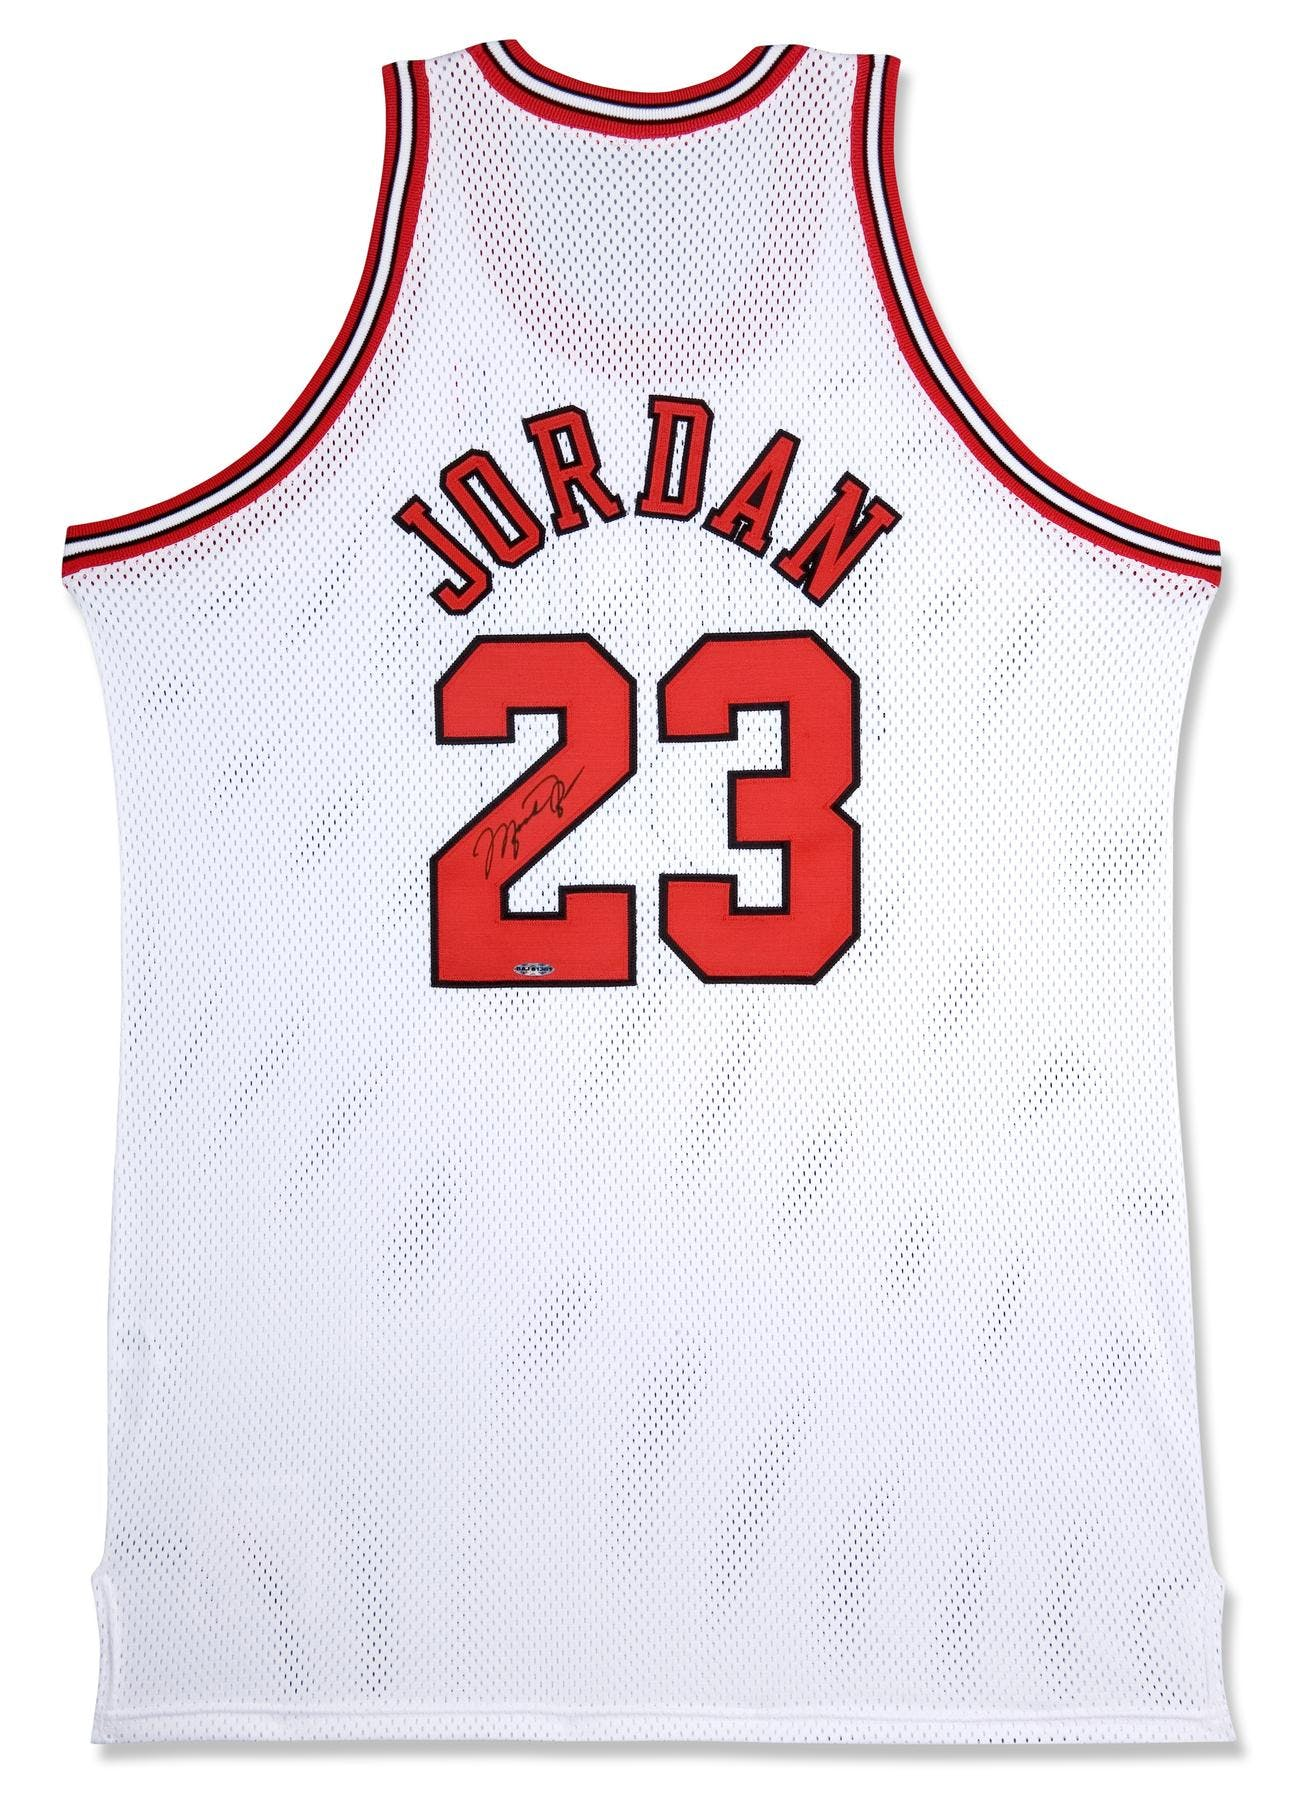 new style e3953 fa533 Michael Jordan Autographed Chicago Bulls White Basketball Jersey UDA